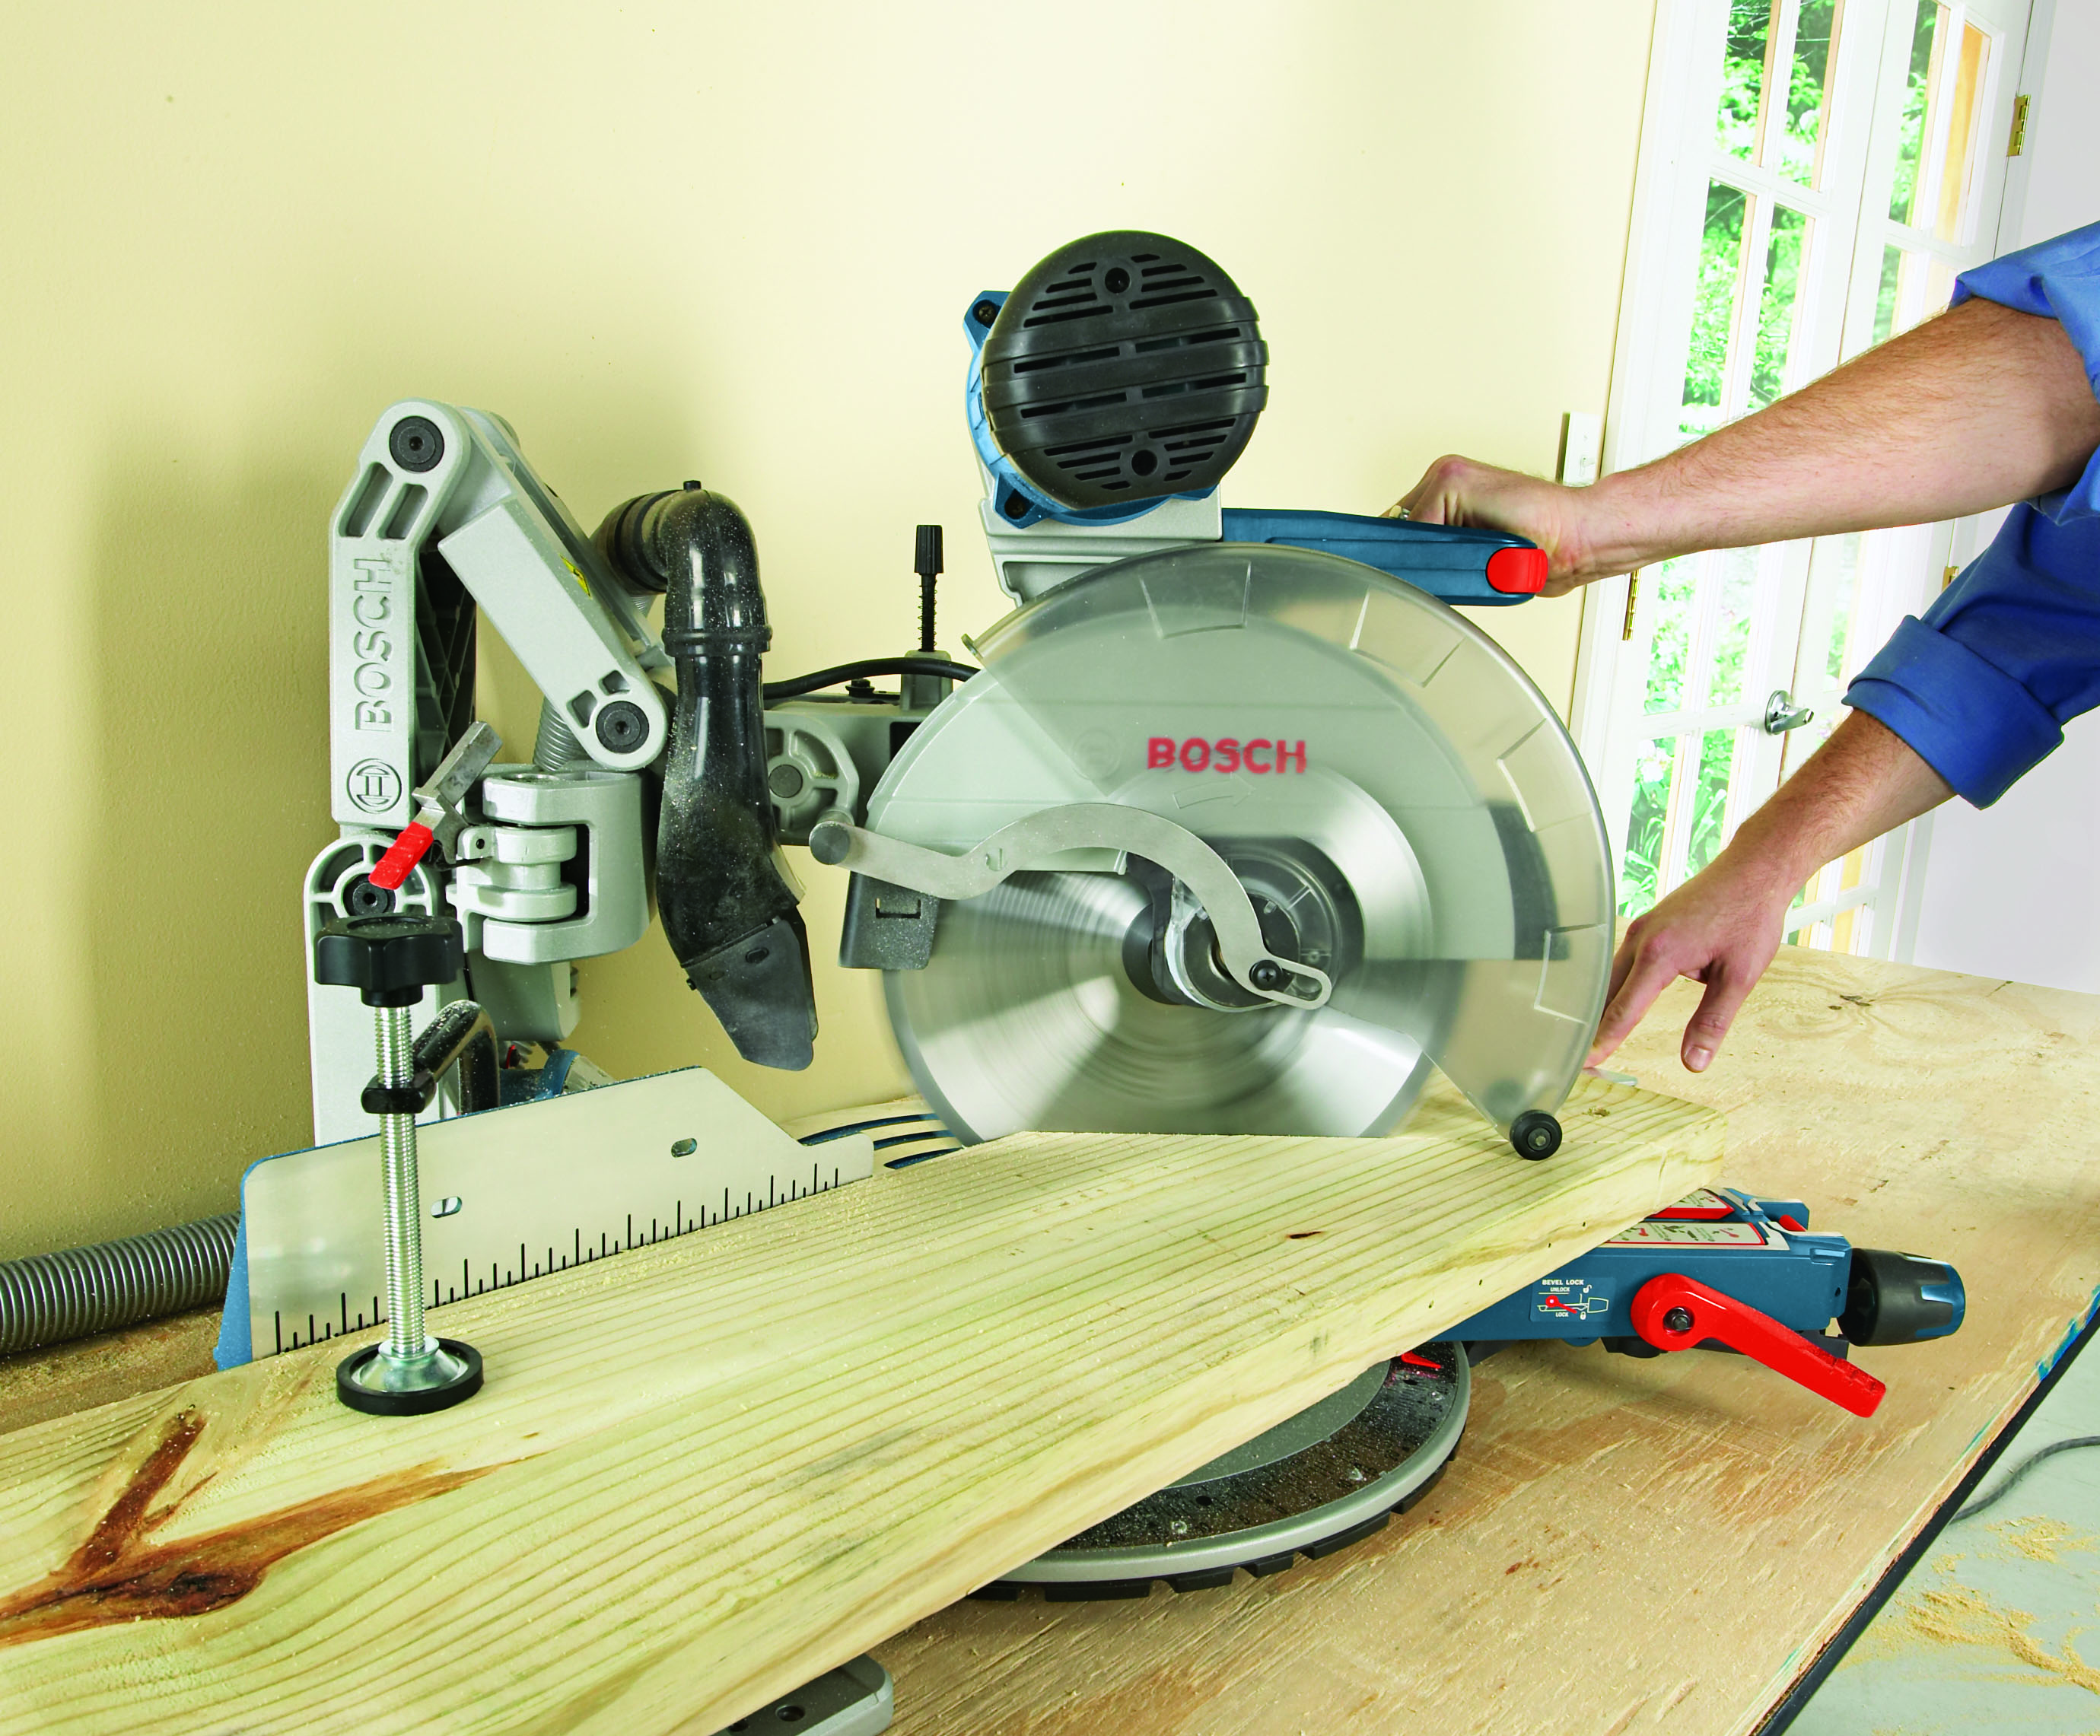 Gcm12sd 12 in dual bevel glide miter saw bosch power tools gcm12sd greentooth Image collections